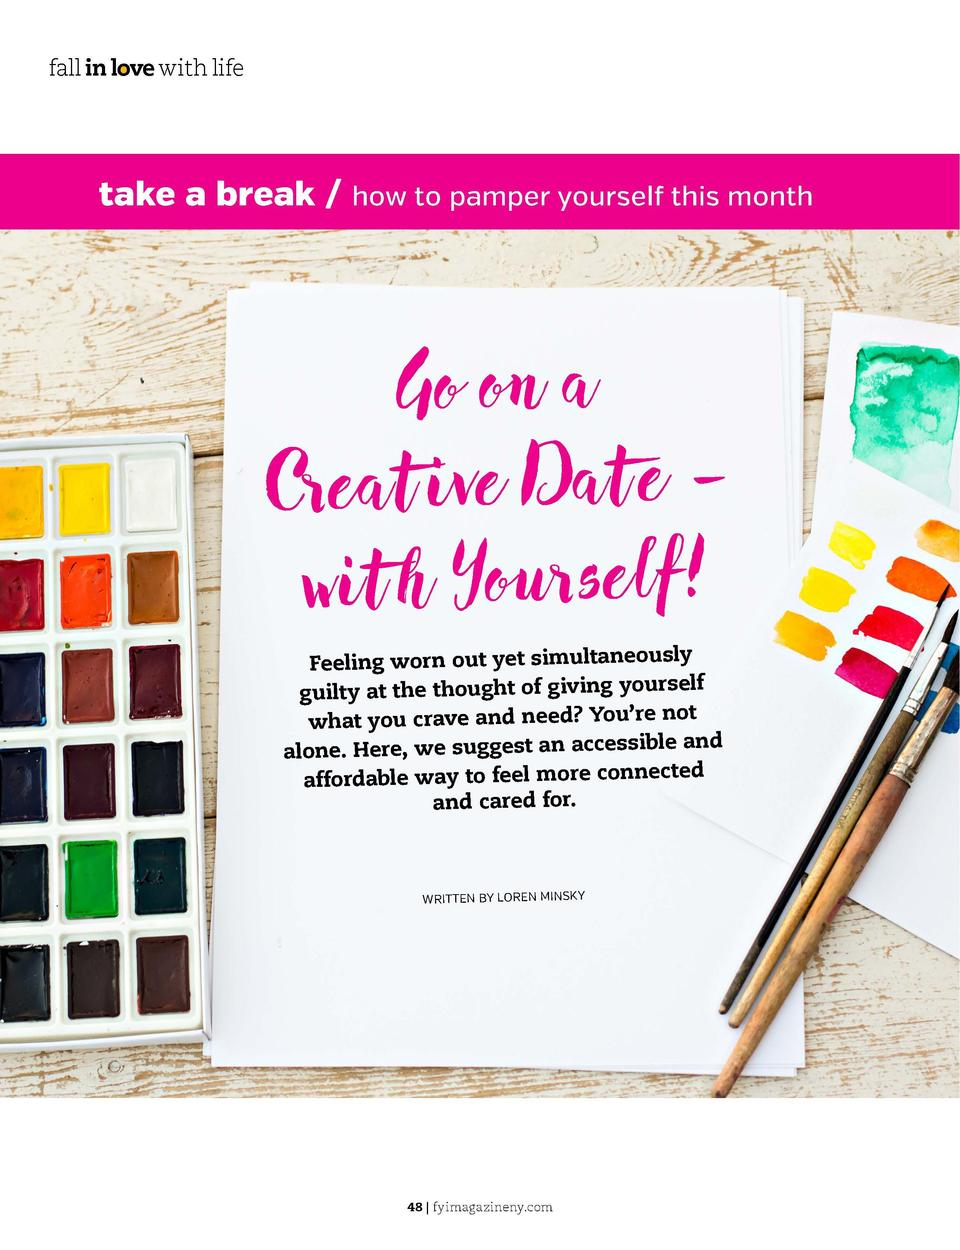 fall in love with life  fall in love with life  take a break   how to pamper yourself this month  Go on a Crea t ive Da te...